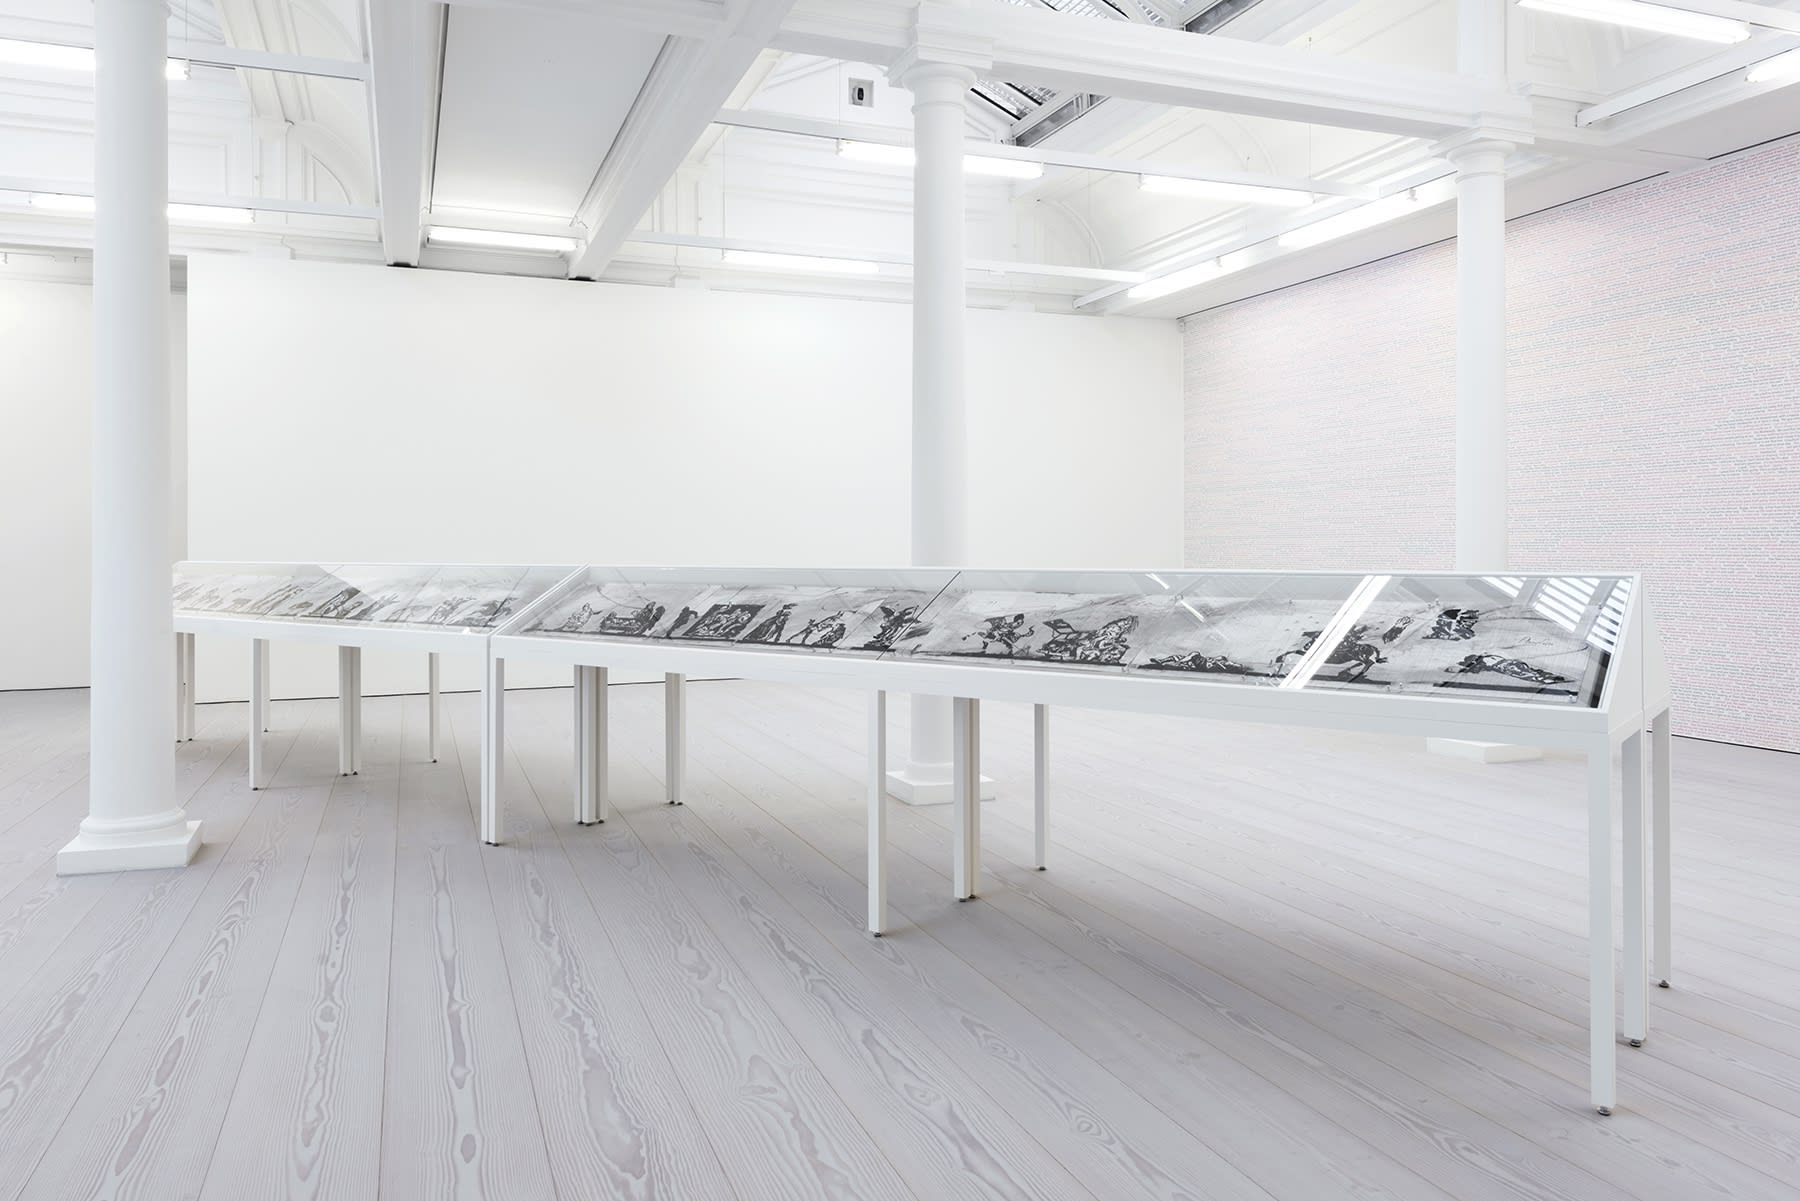 Charcoal drawings are displayed in a long vitrine in a white room with skylights.